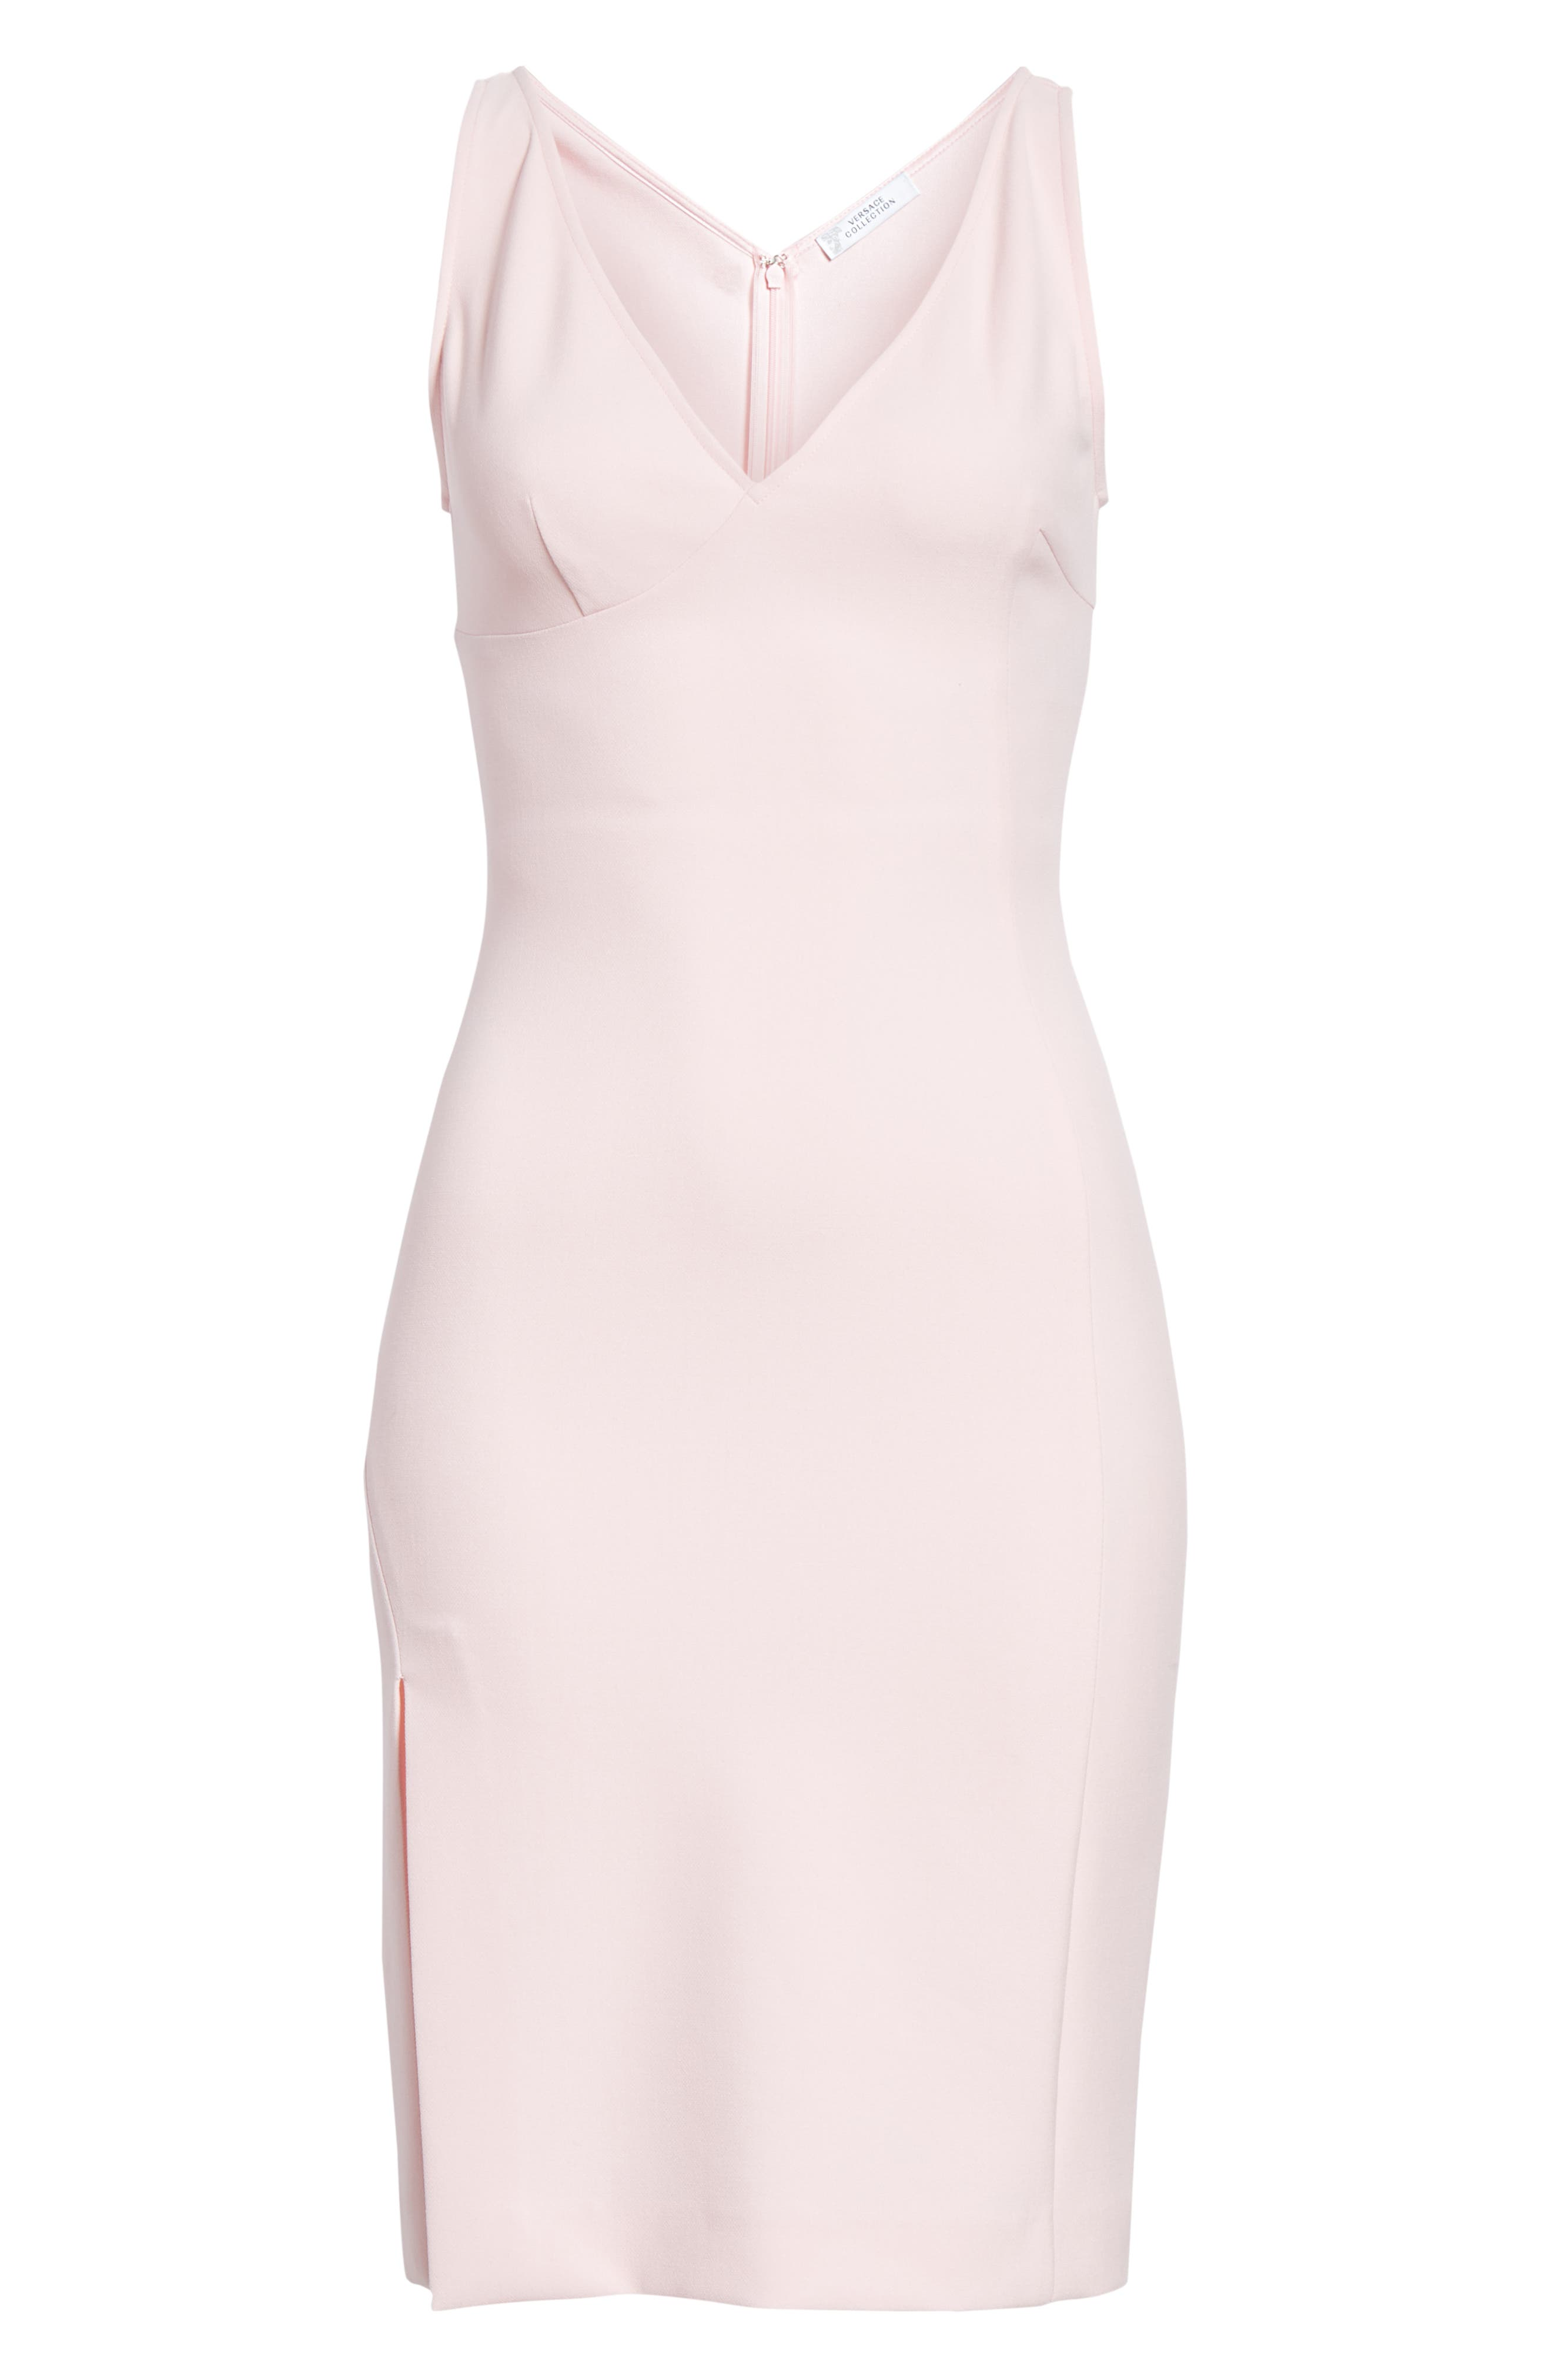 VERSACE COLLECTION, Stretch Cady Sheath Dress, Alternate thumbnail 7, color, PASTEL ROSE